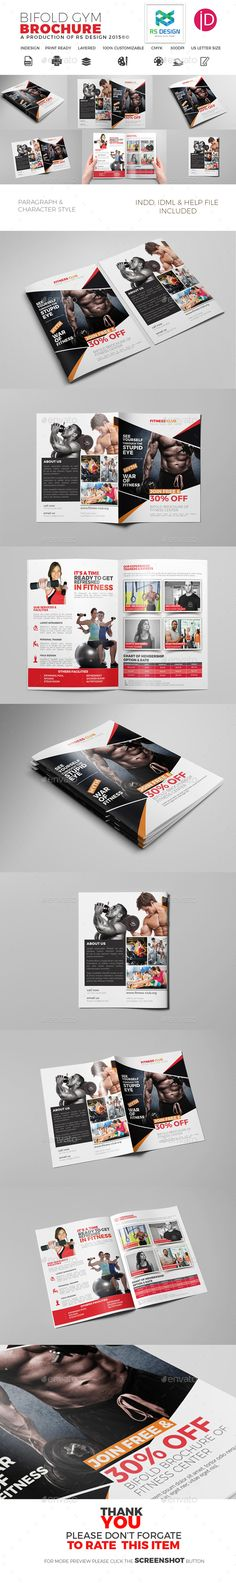 Trifold Brochure for Gym Template InDesign INDD. Download here: http://graphicriver.net/item/bifold-brochure-for-gym/16226764?ref=ksioks